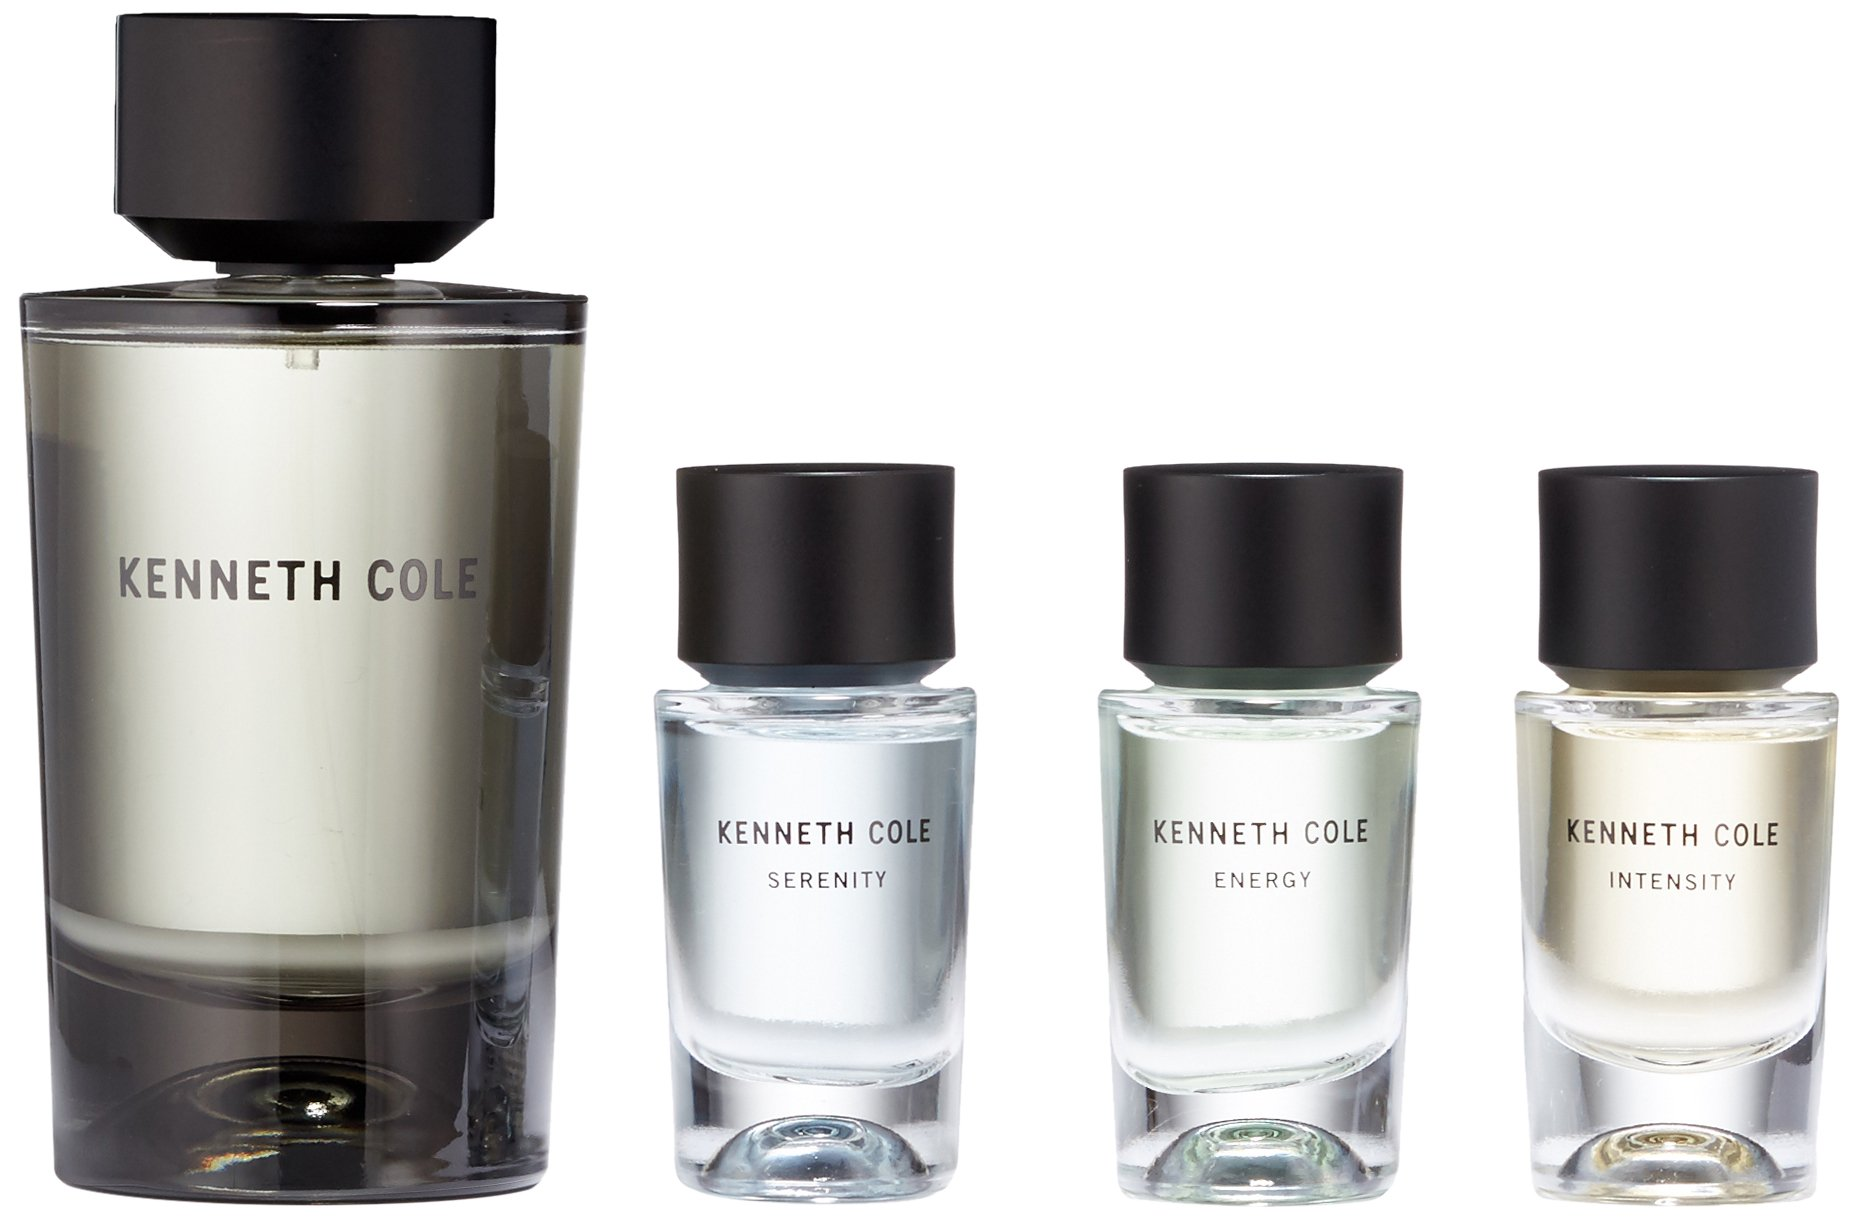 Kenneth Cole for Him Gift Set